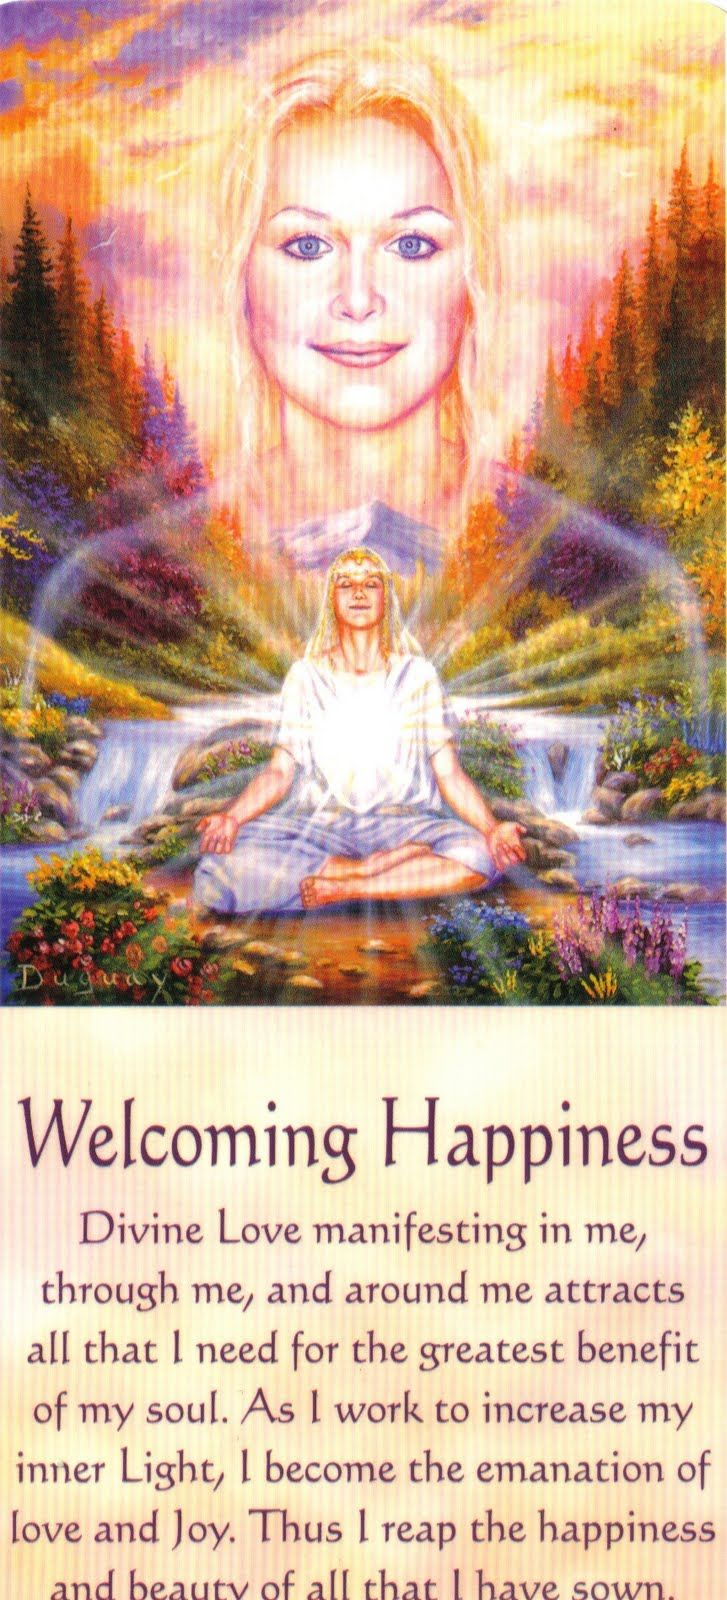 Welcoming+Happiness by Mario Duguay